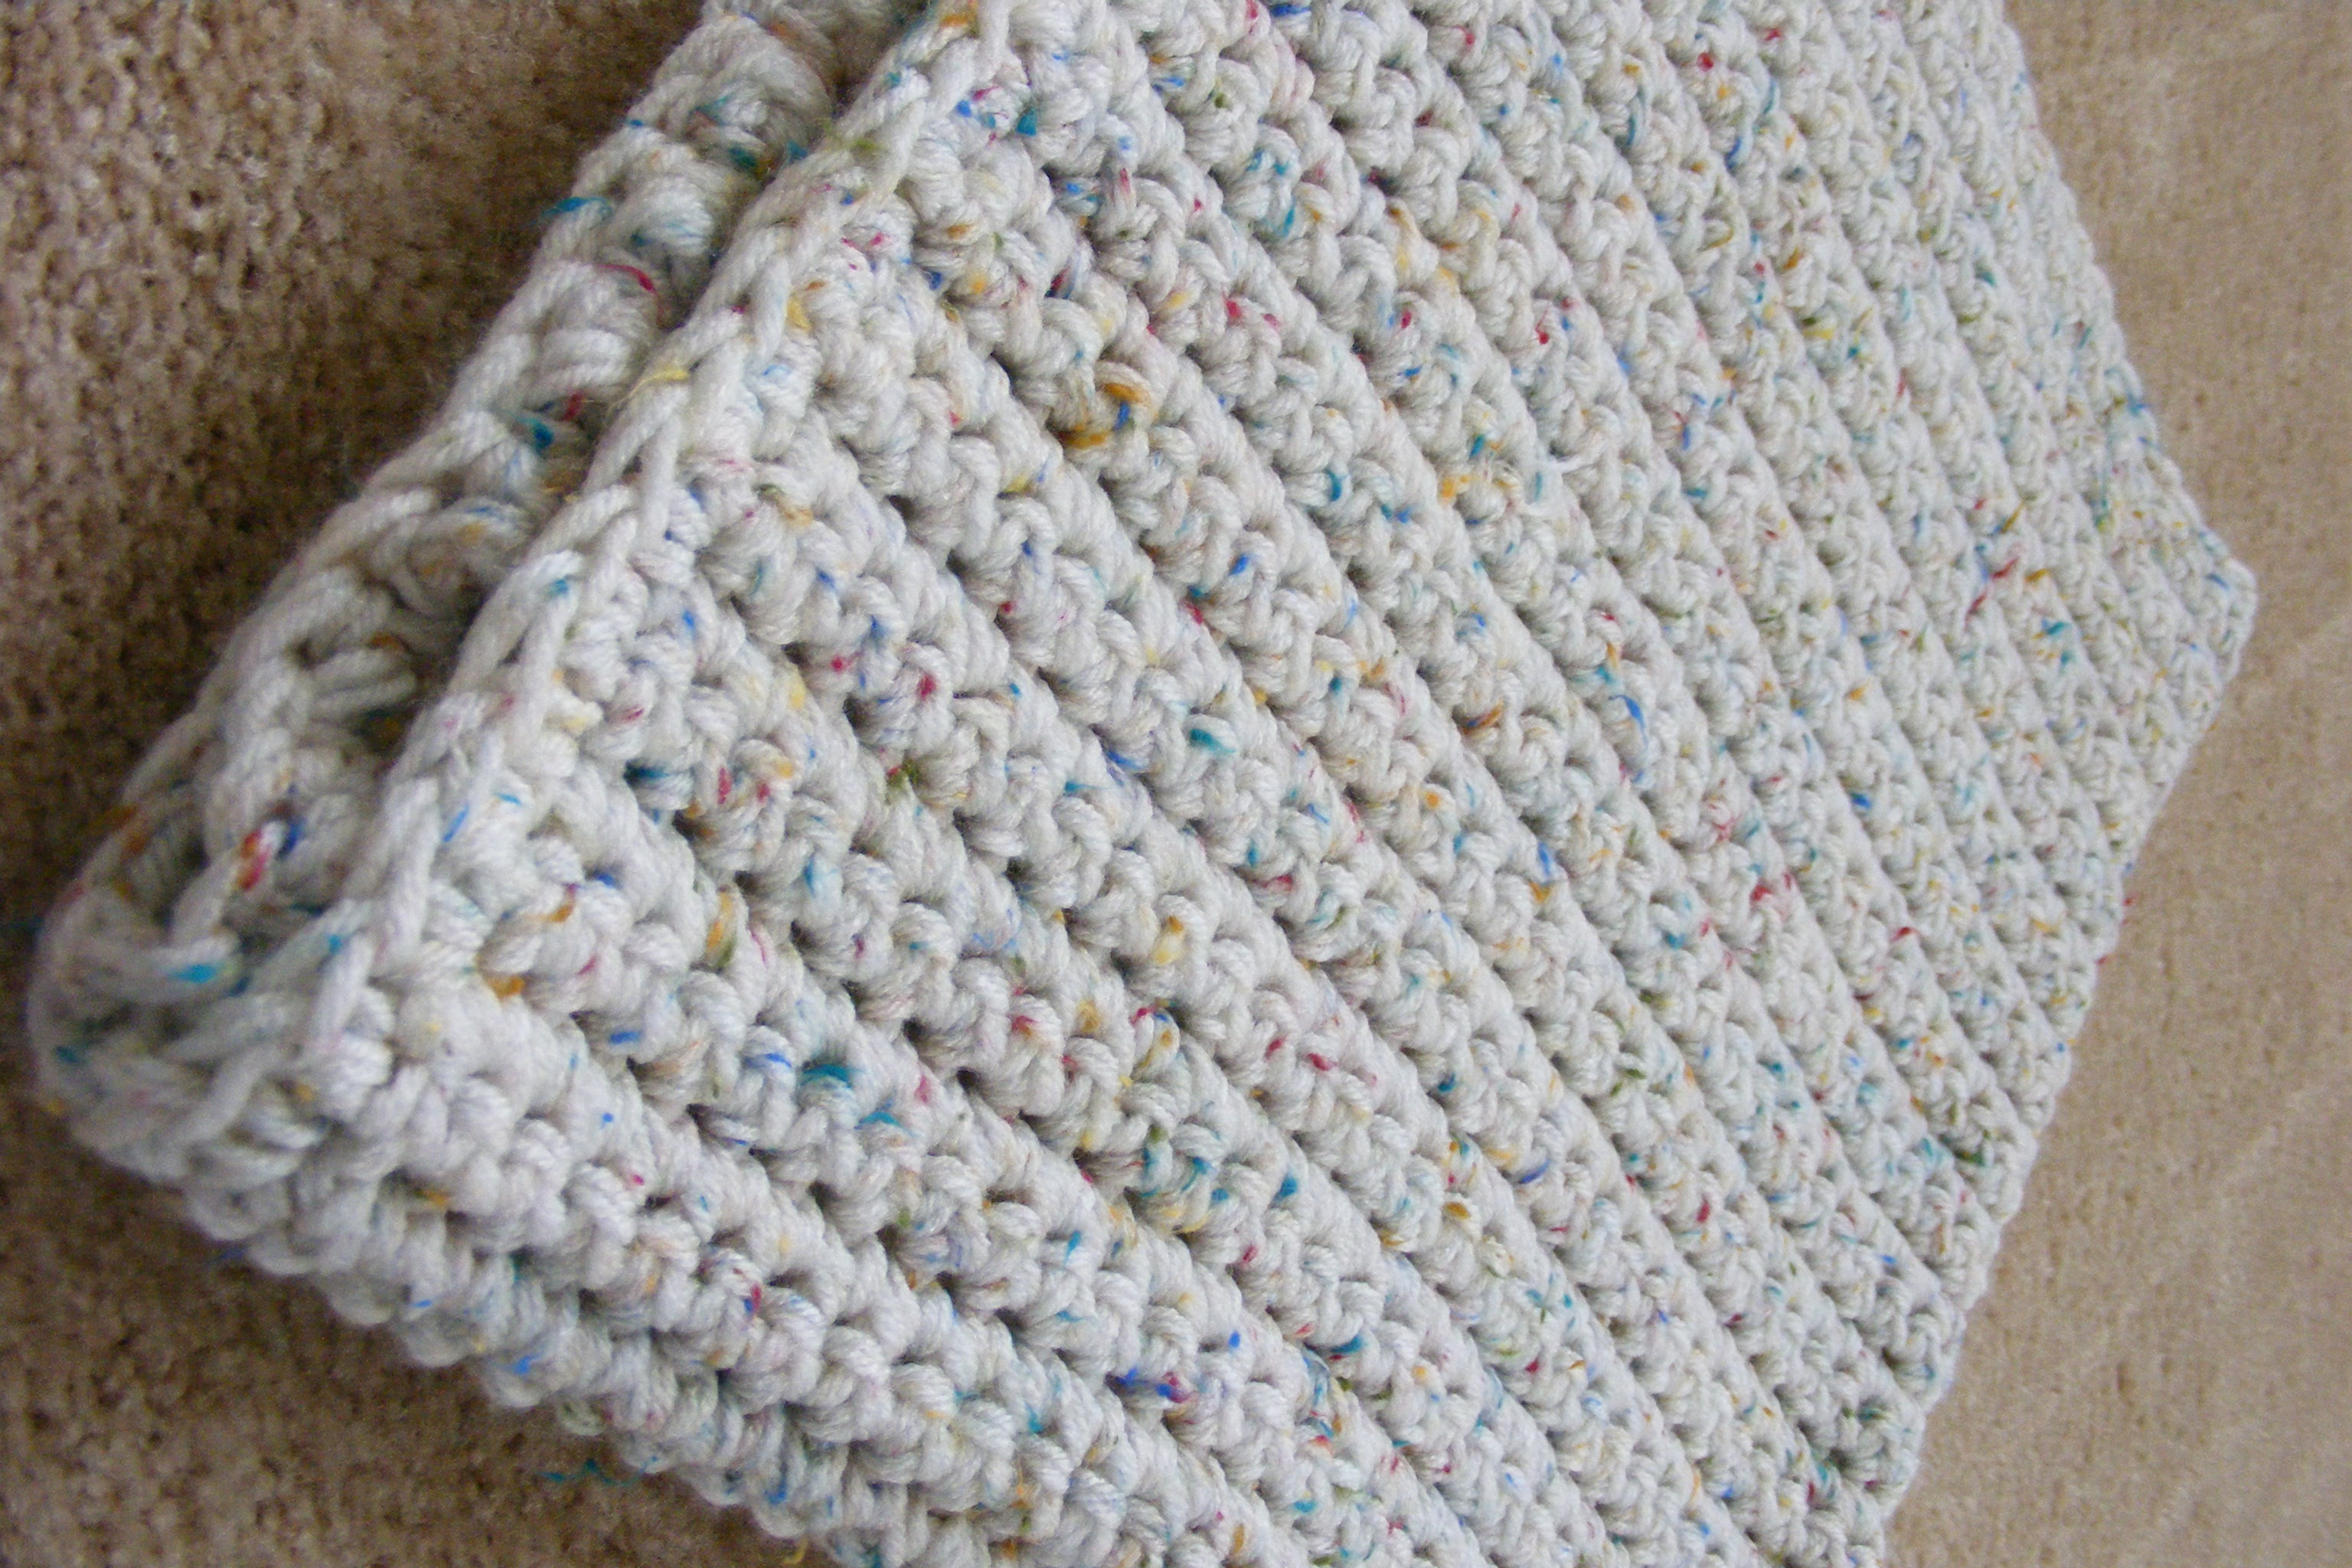 Crochet Patterns for Beginners Luxury Crochet and Knit Baby Blanket Patterns Patterns Of New 49 Models Crochet Patterns for Beginners